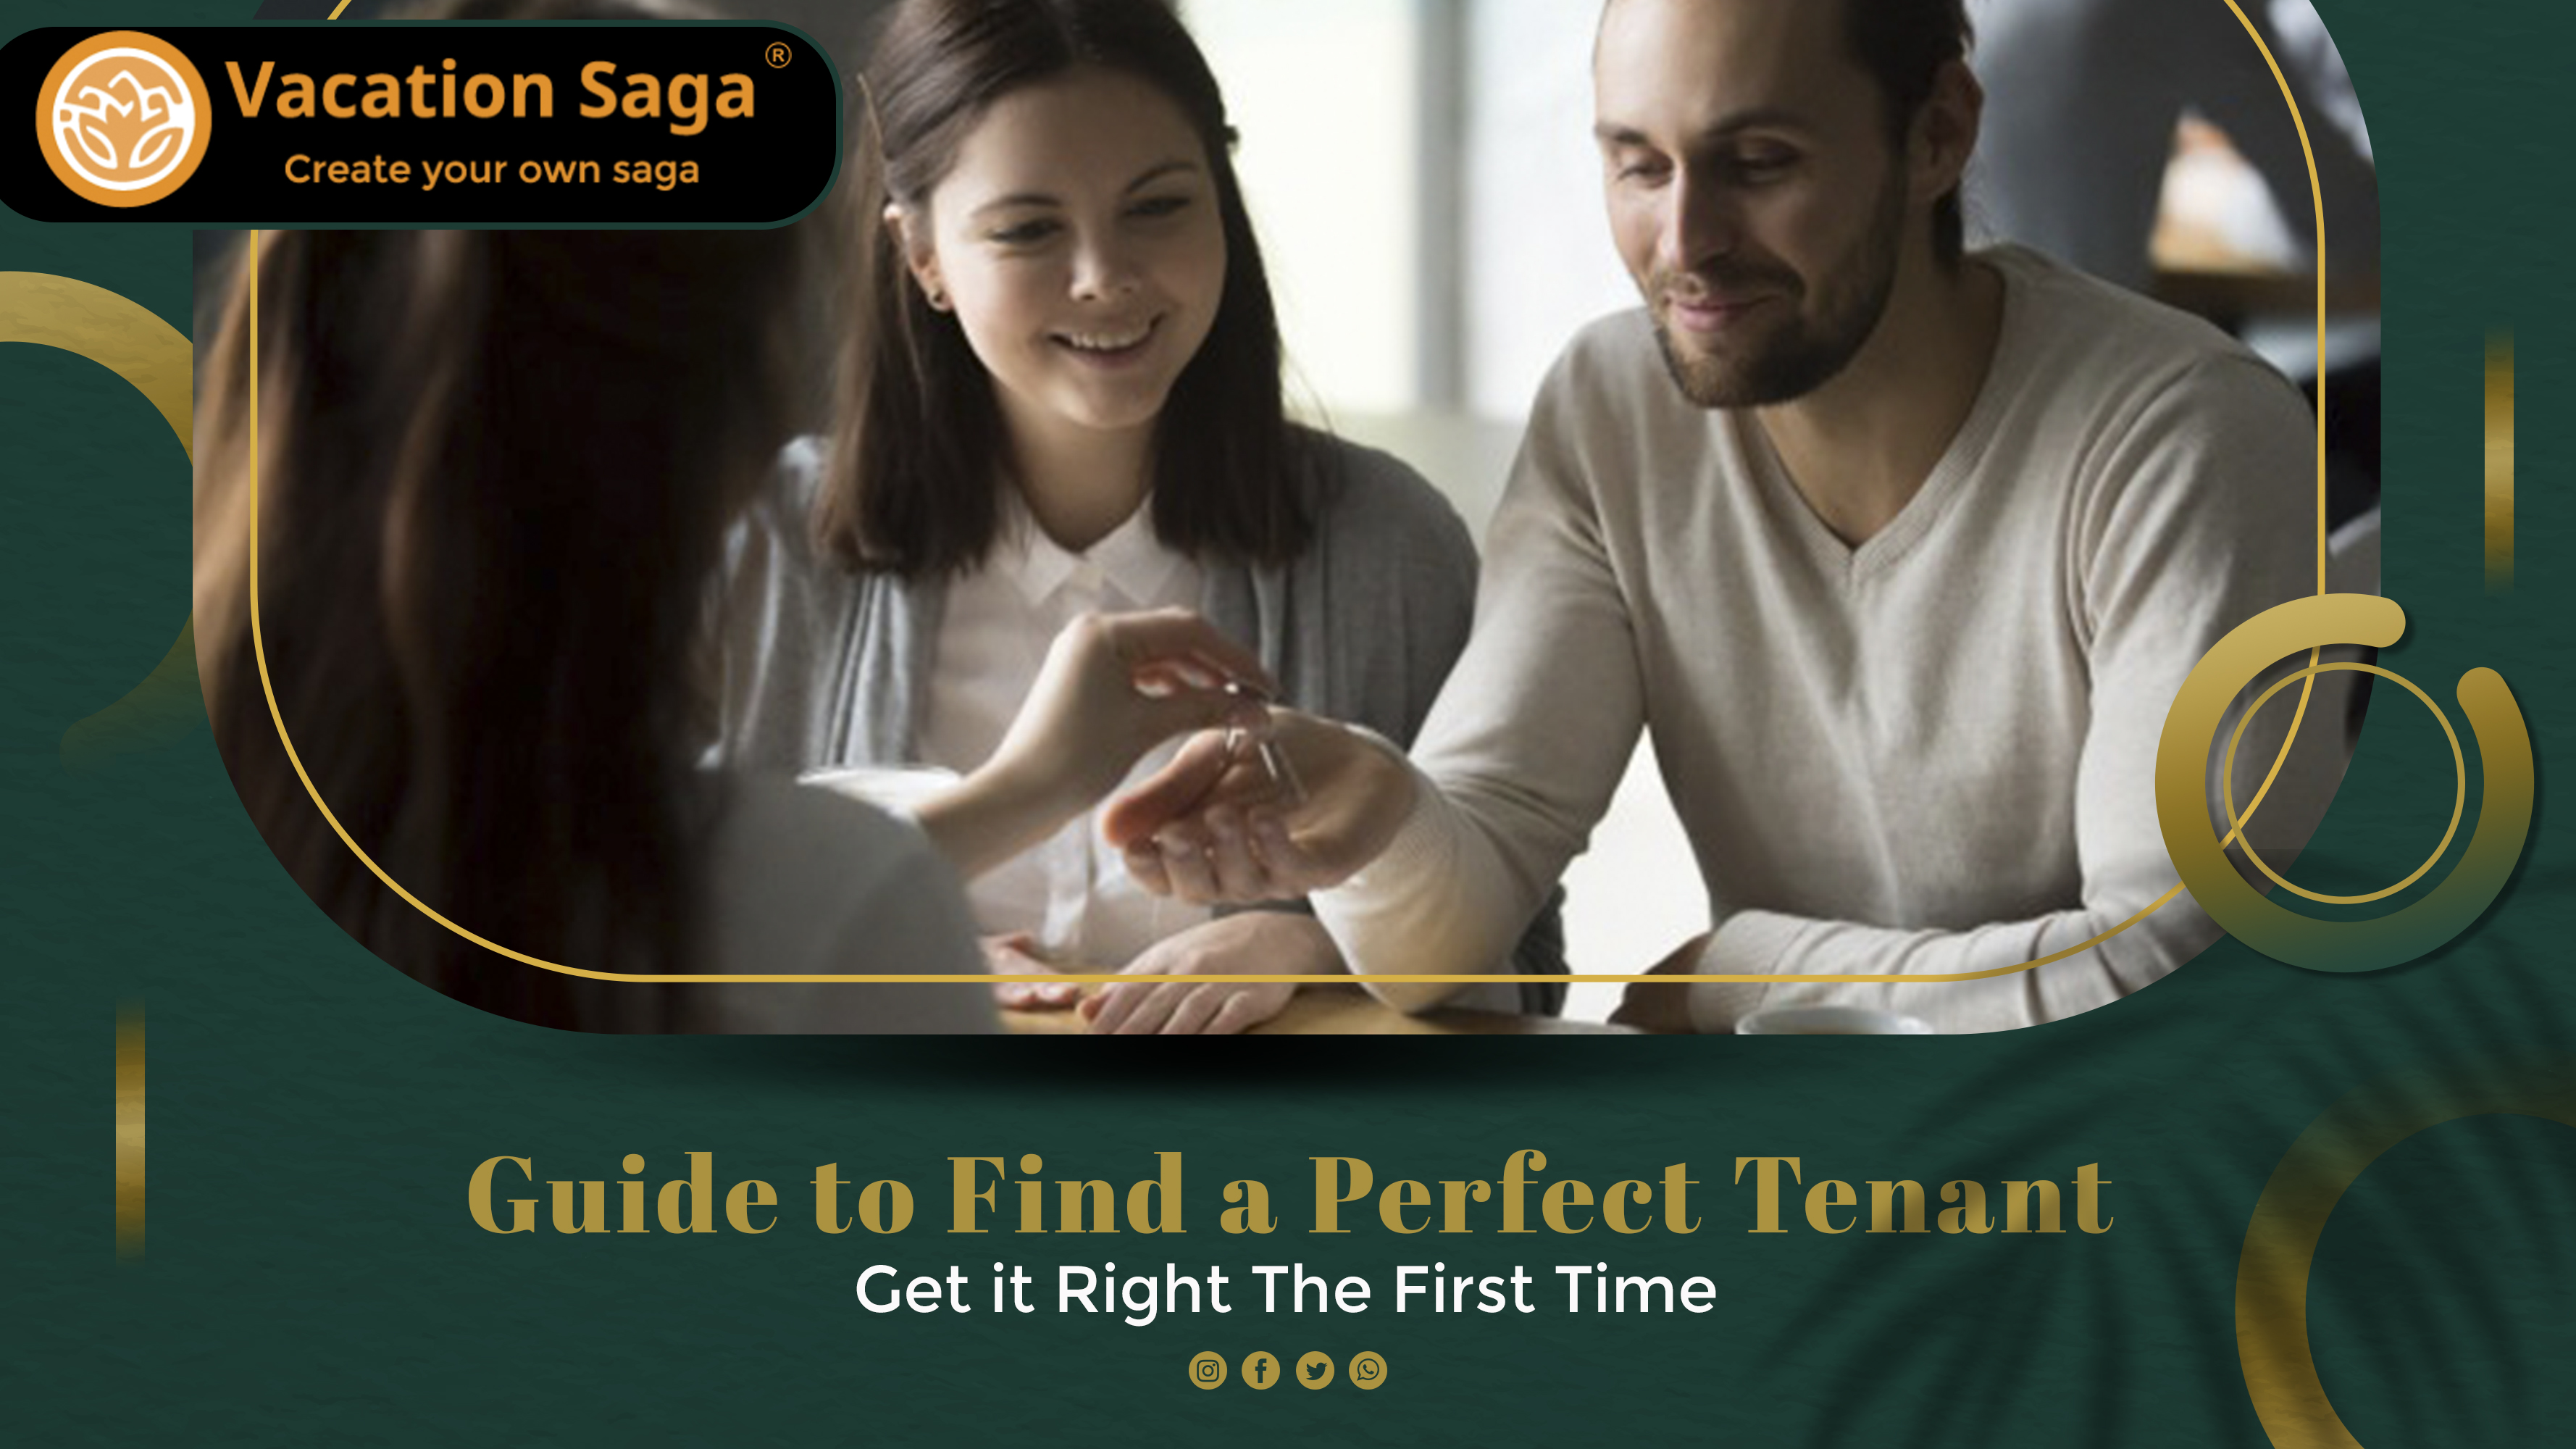 Guide to Find a Perfect Tenant